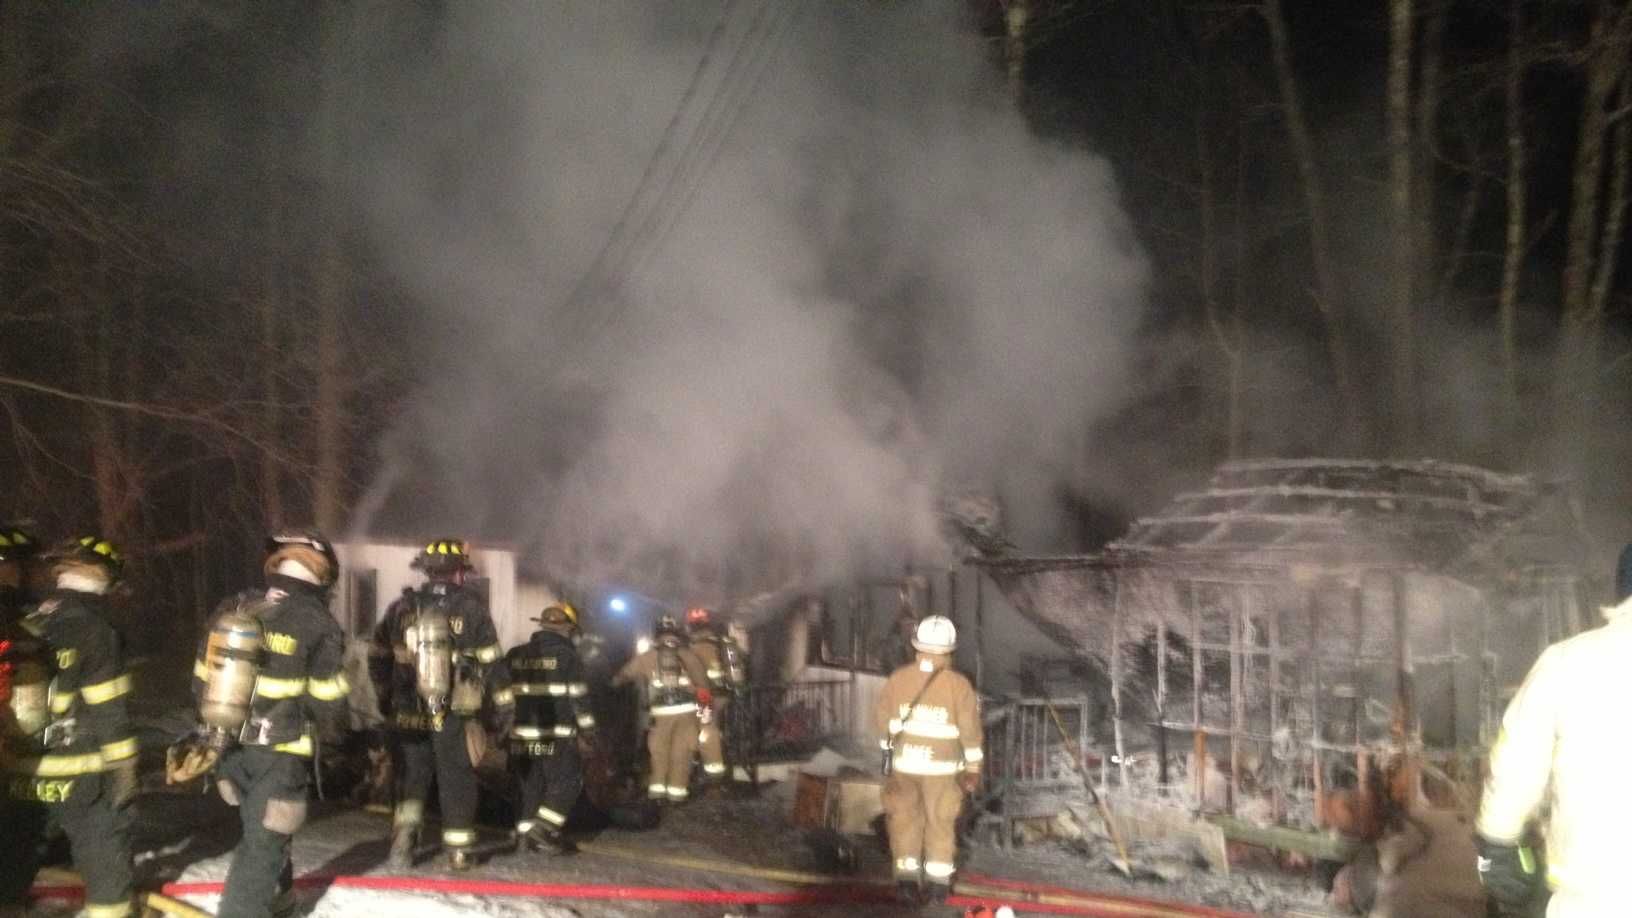 Fire destroyed a Hillsborough mobile home, sending one person to the hospital